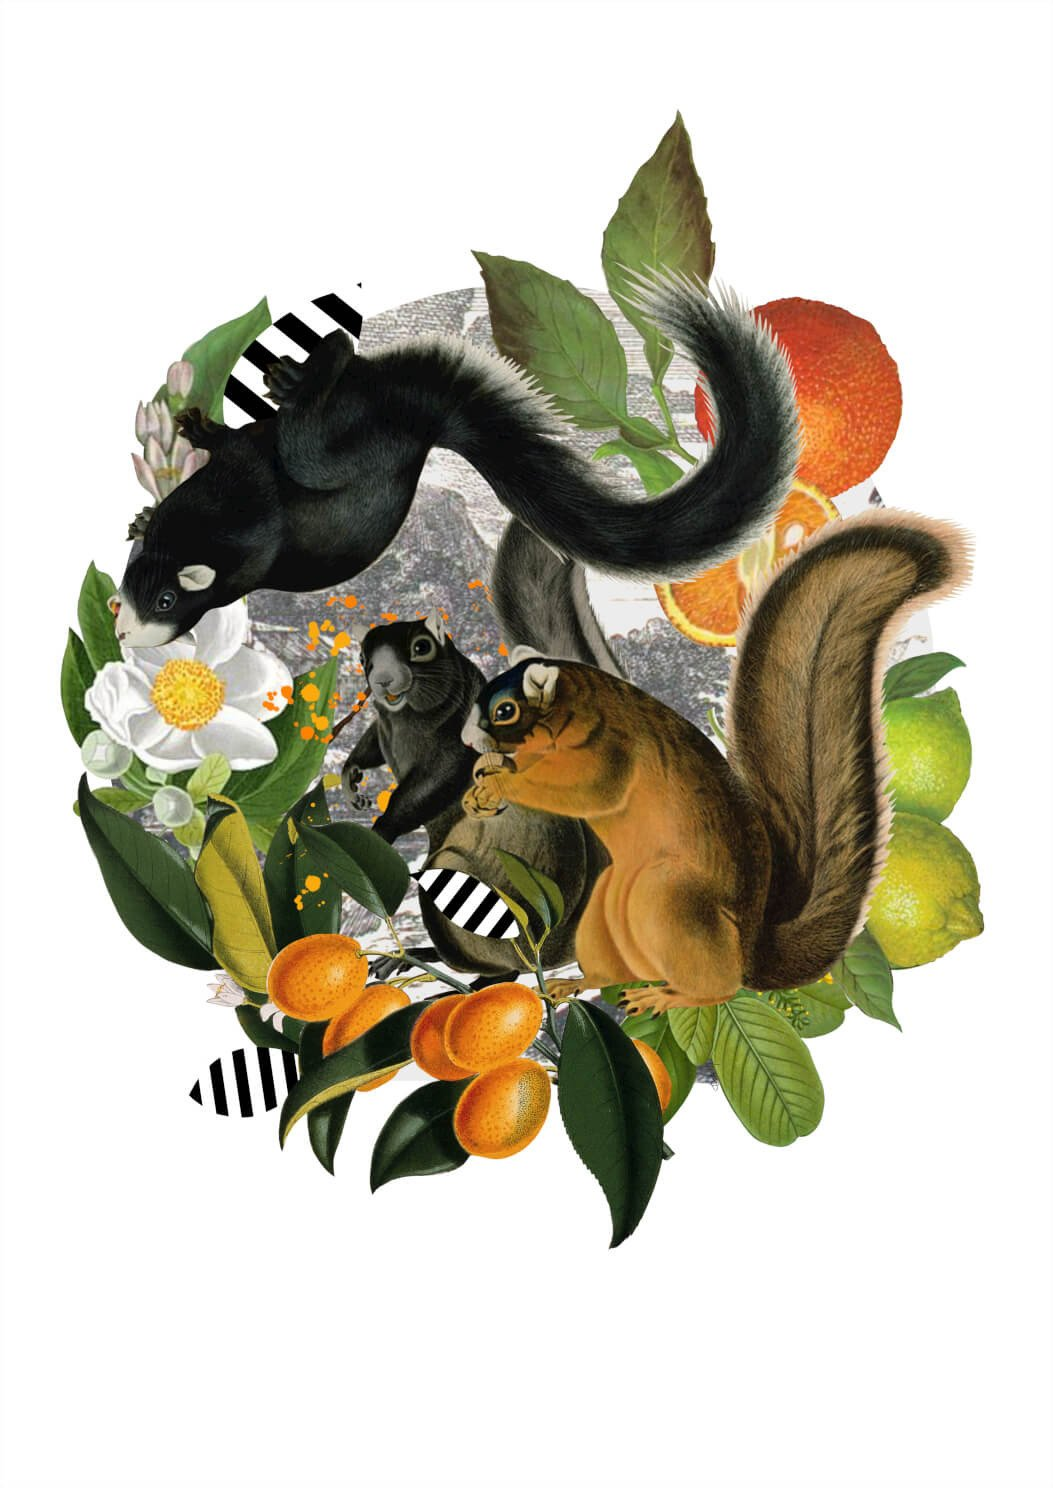 Squirrels in Sicily A3 Print